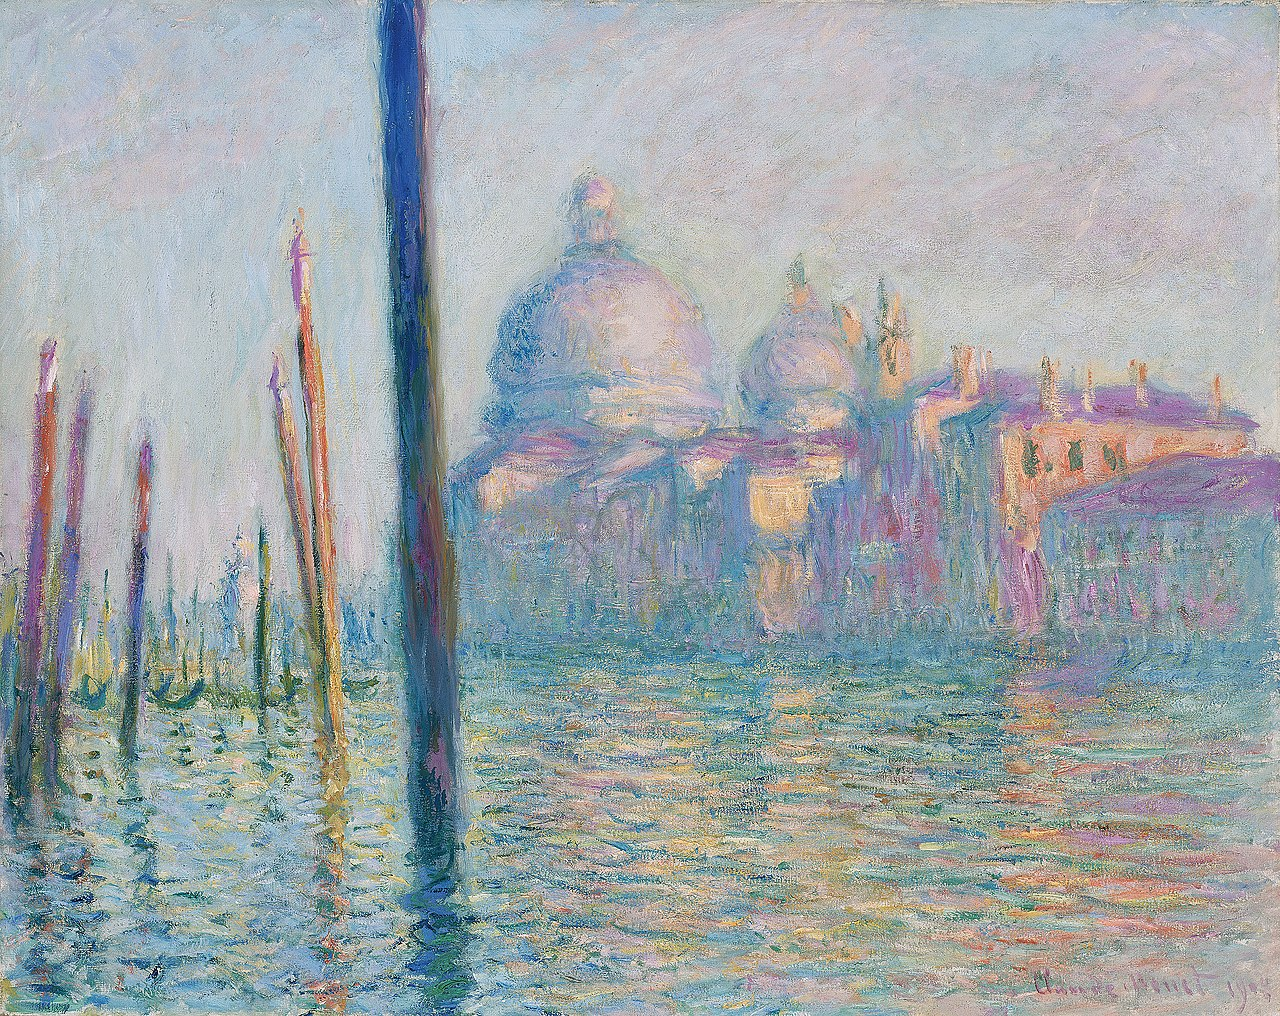 Claude Monet  (1840–1926), The Grand Canal , 1908, oil on canvas, 73.7 × 92.4 cm, Museum of Fine Arts Boston, exhibitions in April